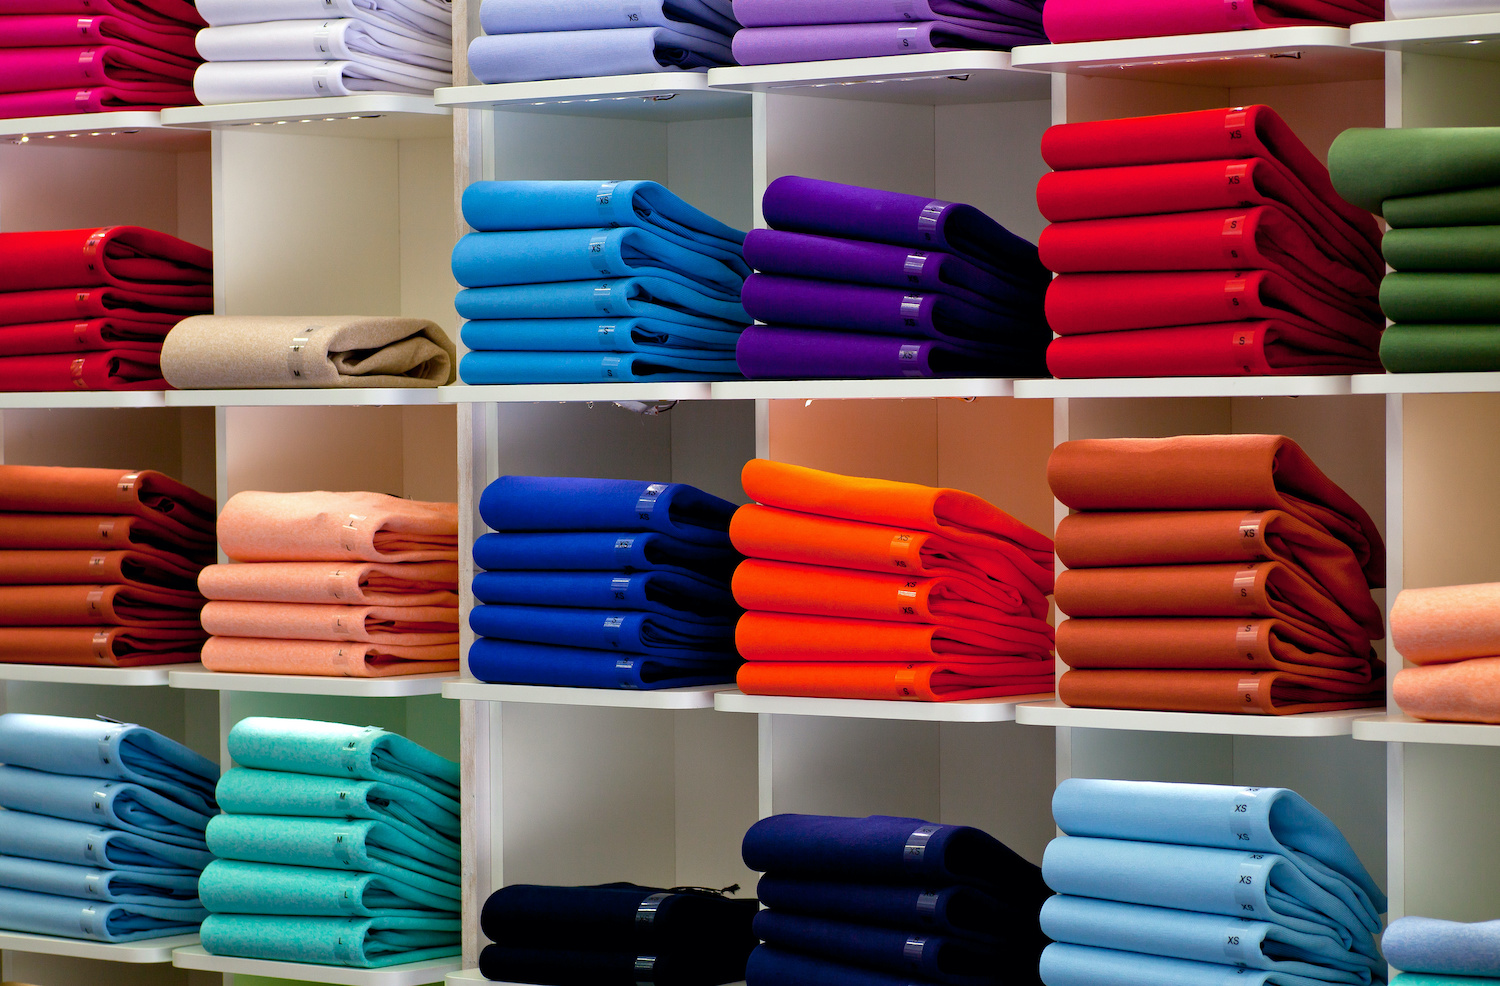 stacks of clothes on retail shelves